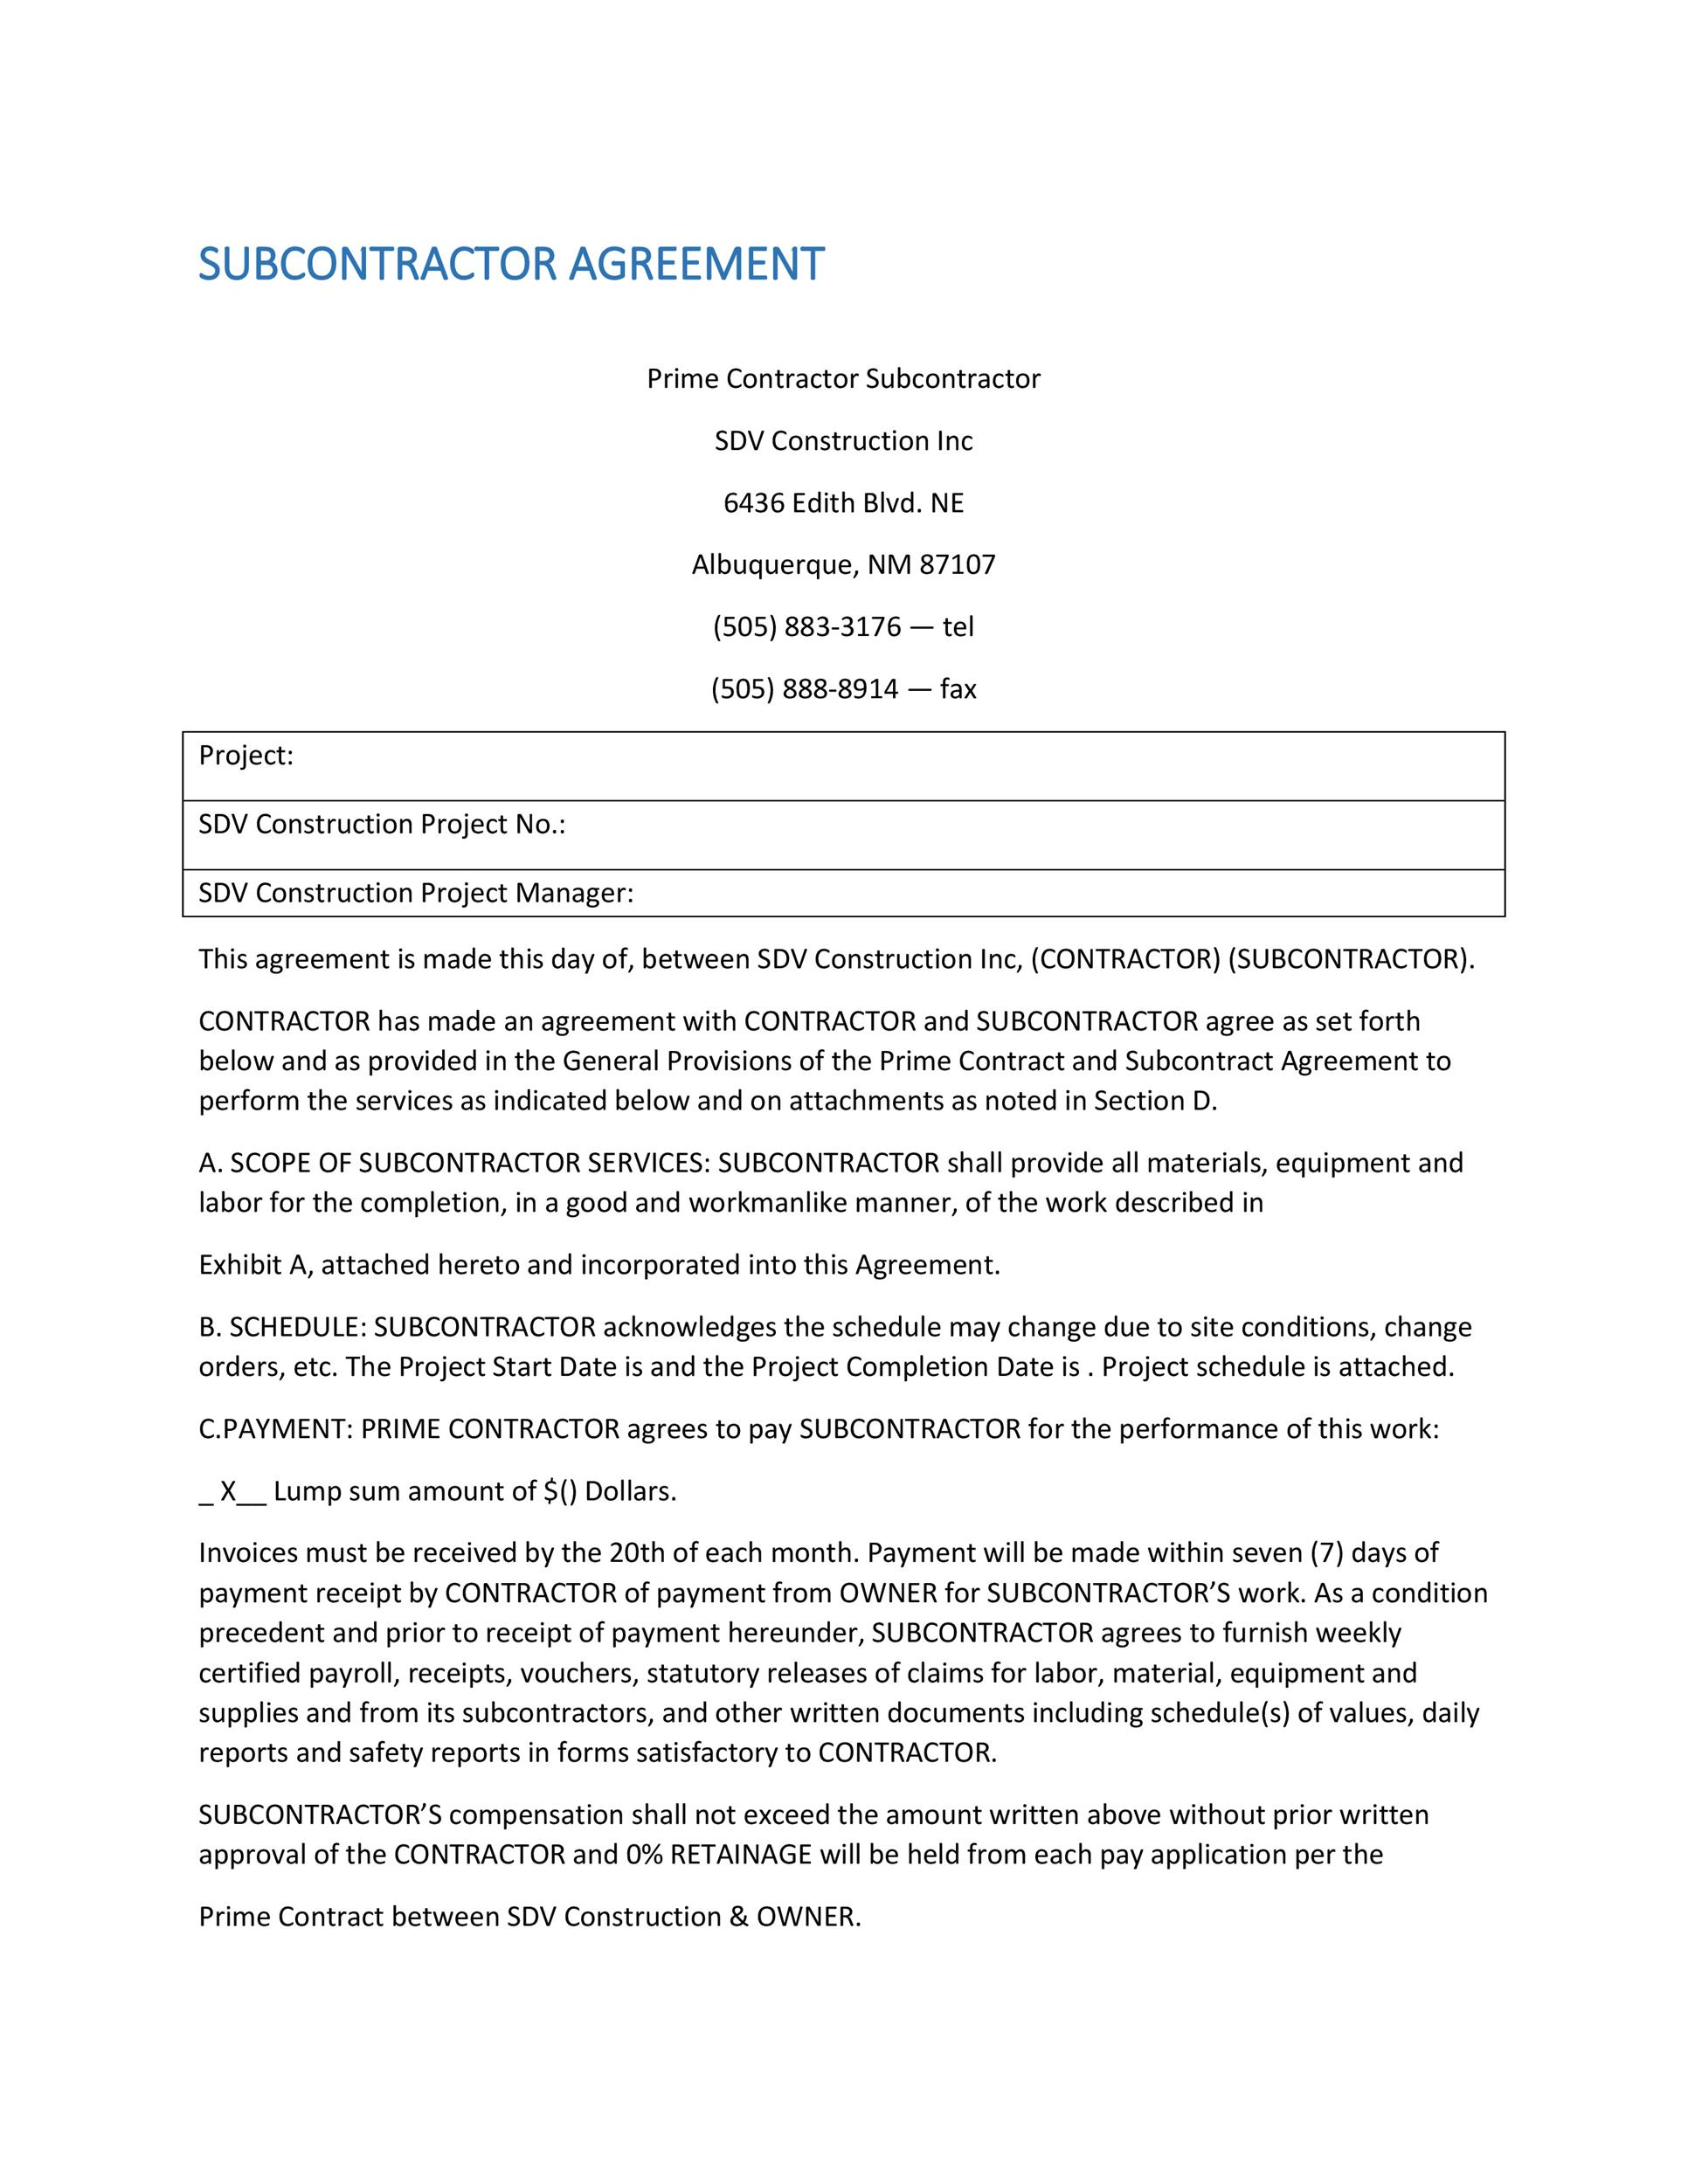 Need a Subcontractor Agreement? 39 Free Templates HERE - sample subcontractor agreement